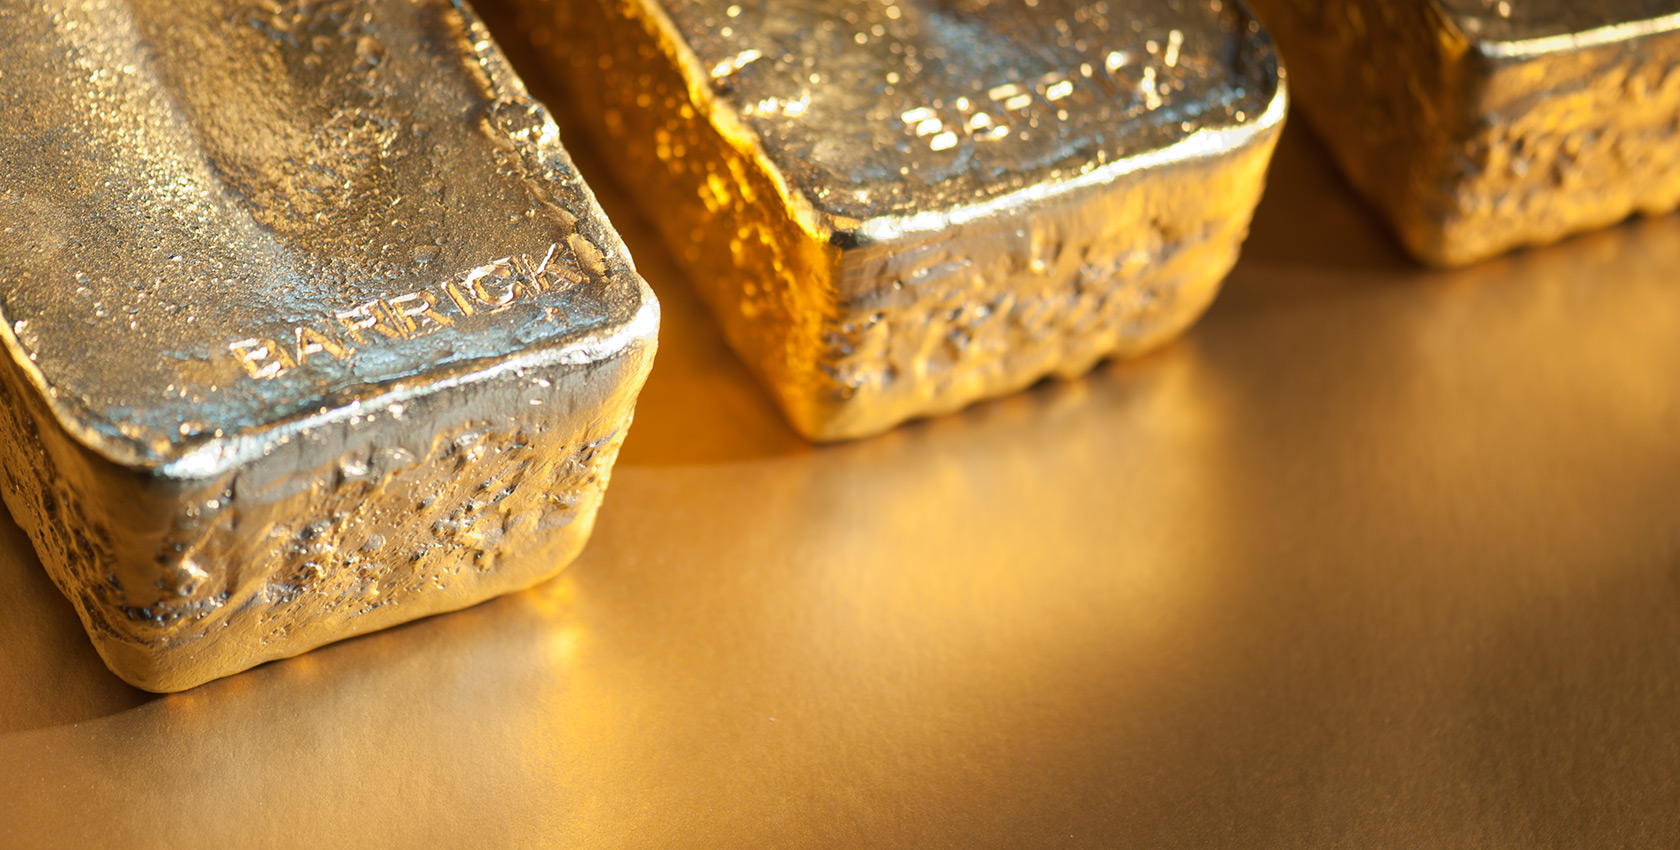 Barrick, China's Shandong Gold to deepen ties, look at acquisitions